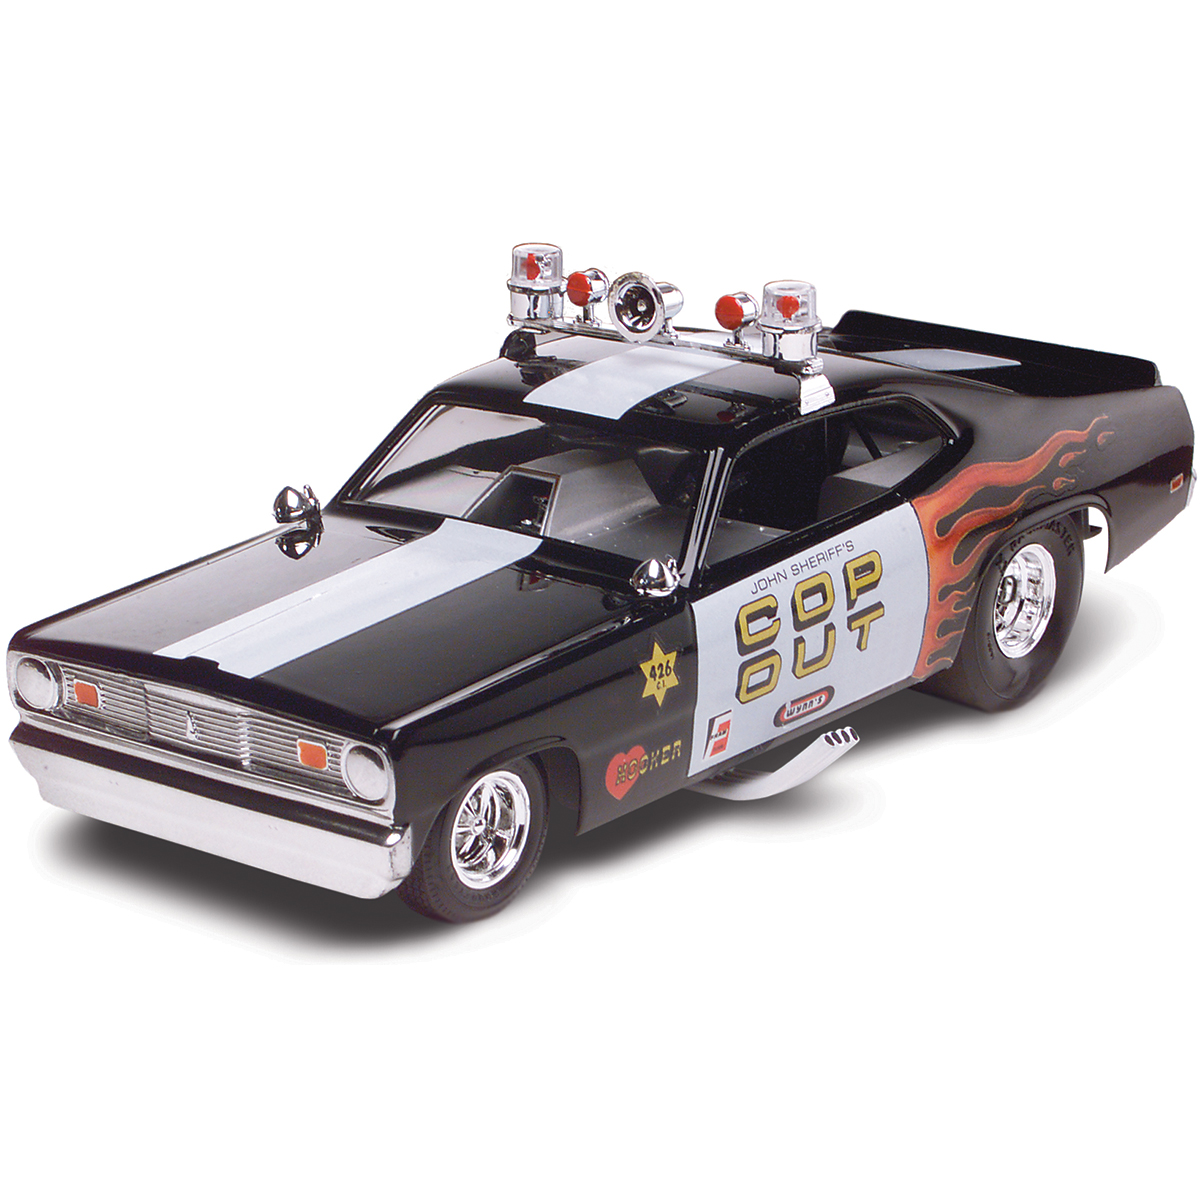 Plastic Model Kit-Plymouth Duster Cop Out Car 1:24